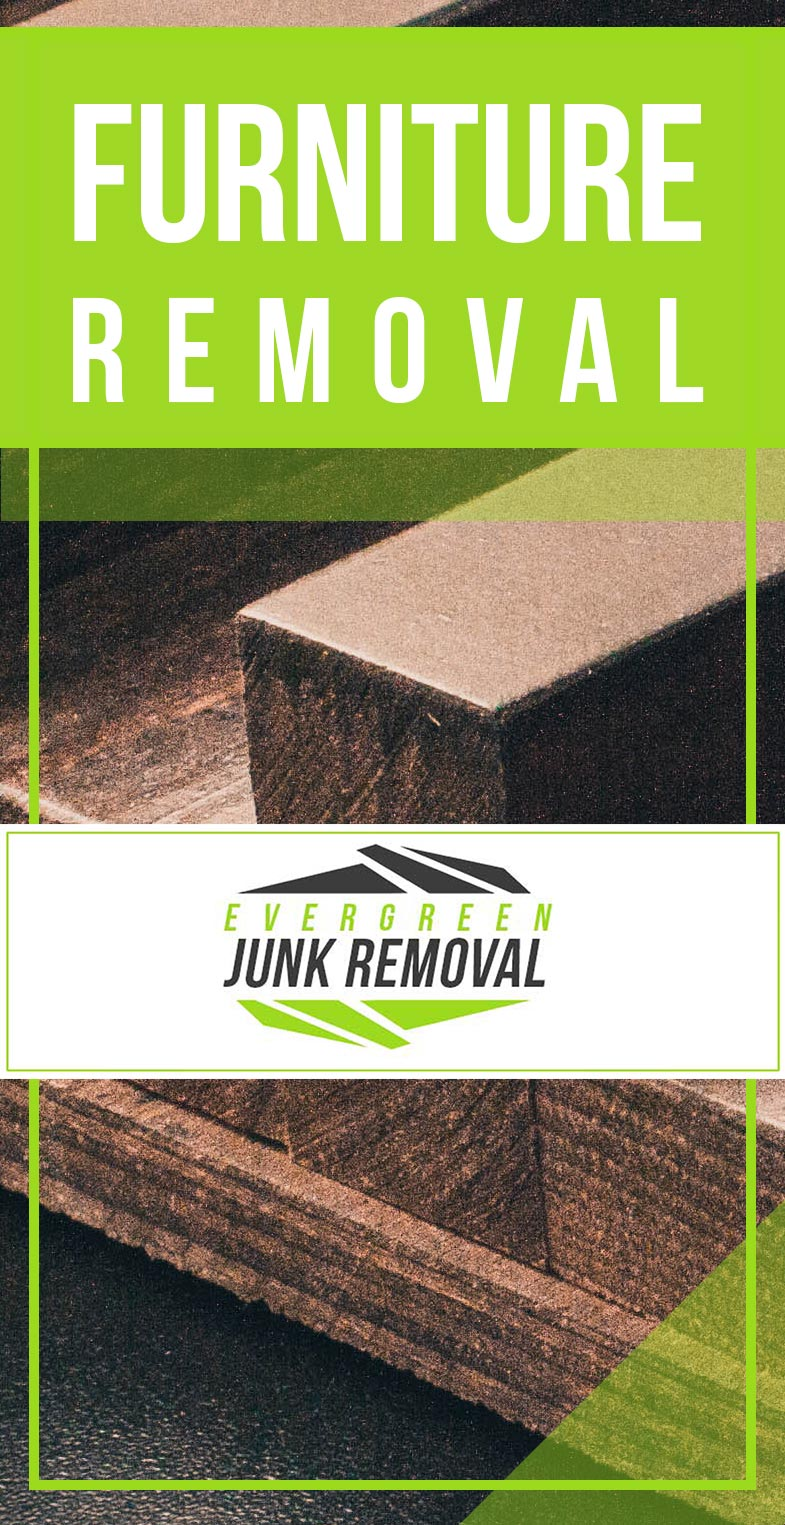 Winter Park Furniture Removal